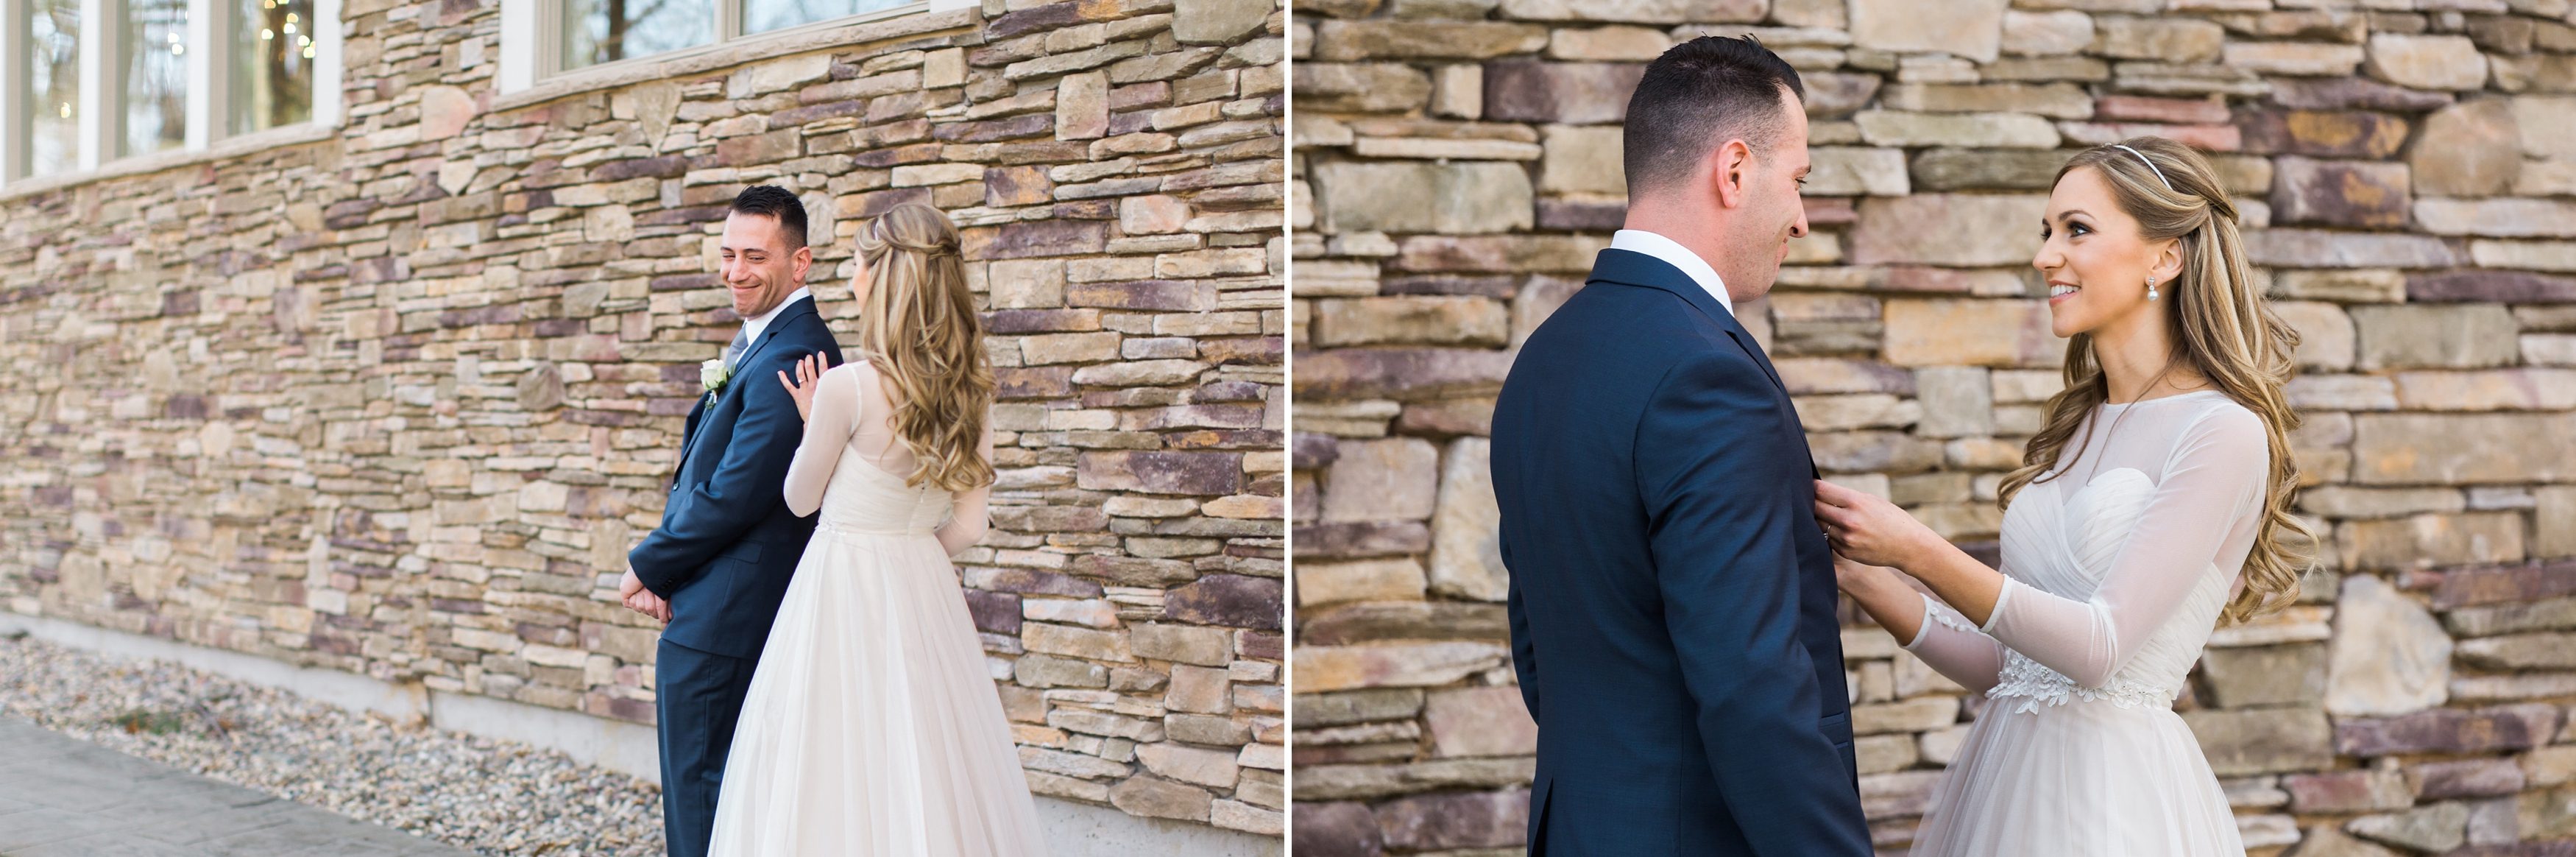 39Allegra_Anderson_Photography_CT_Wedding_Photographer_Riverview_Simsbury_Saleh_Web